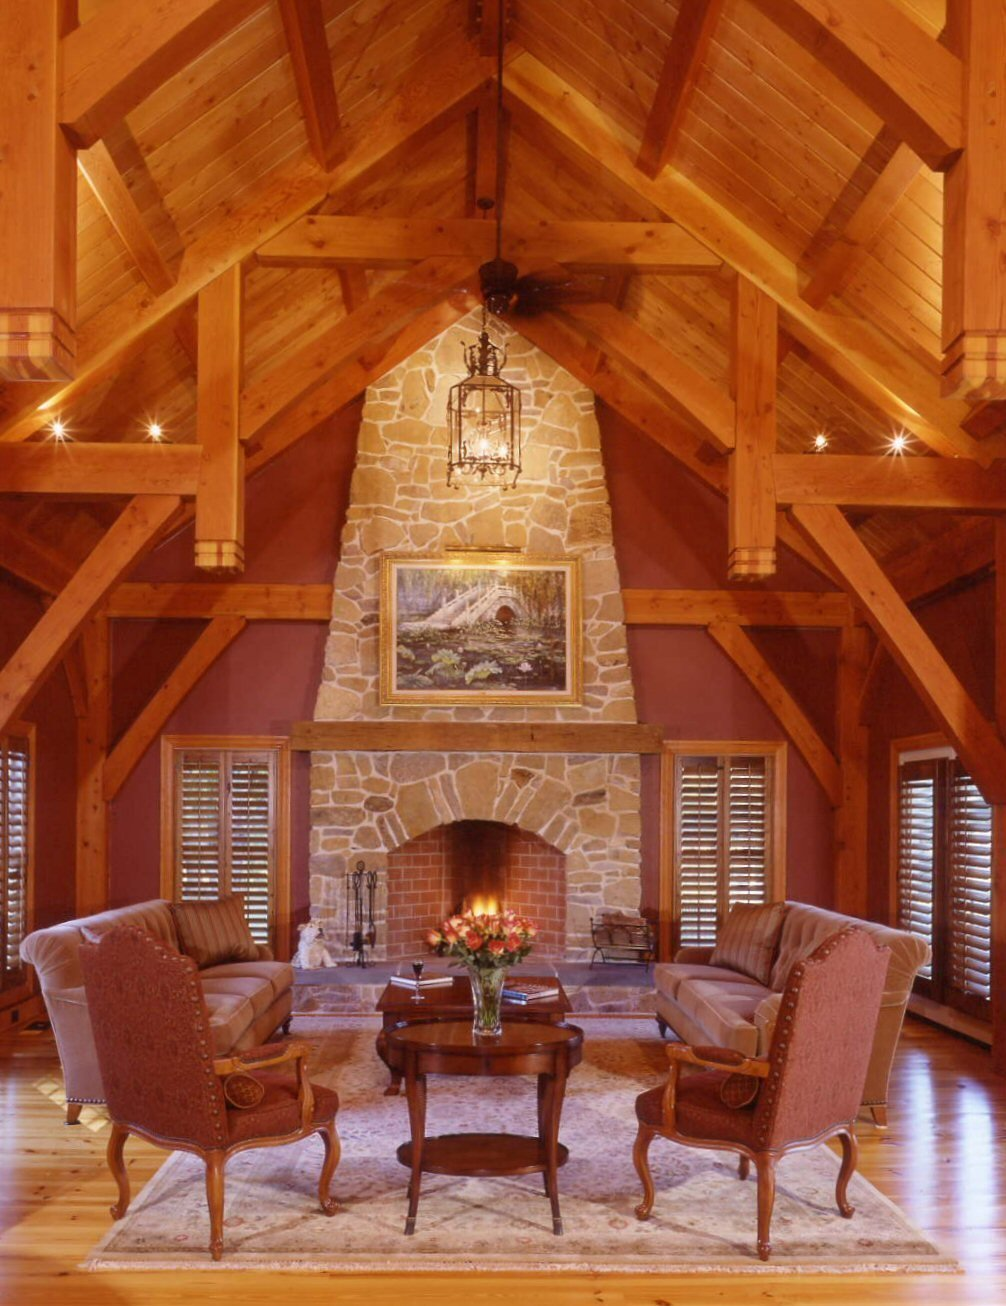 Custom Timberpeg Hammer Beam Truss and Grand Fireplace in the Formal Great Room   Yellow Brook Farm House by Timberpeg